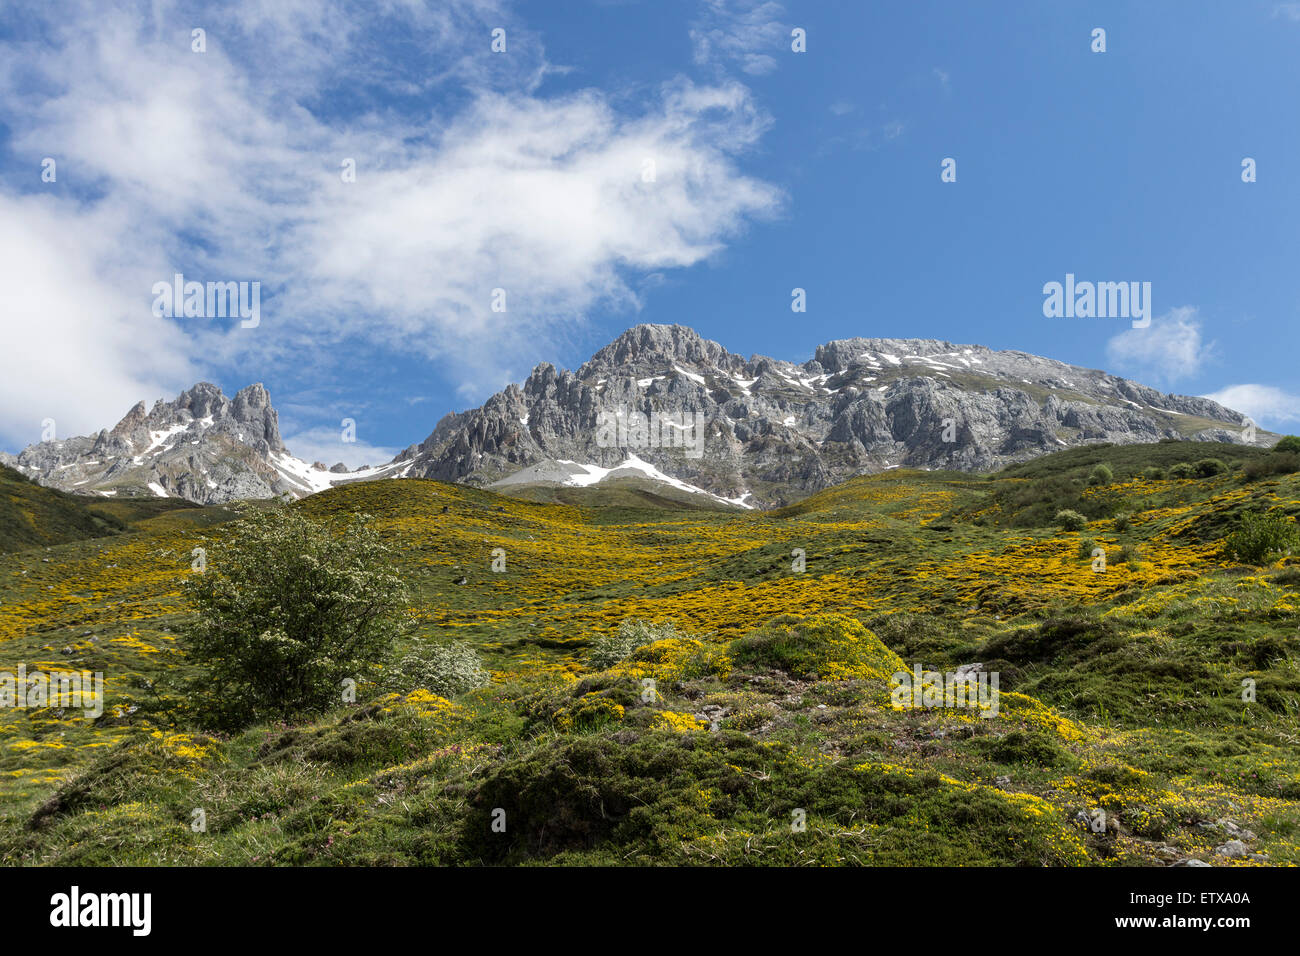 The Picos de Friero Mountains Viewed from the PR 15 Path Above the Village of Santa Marina de Valdeón Picos - Stock Image